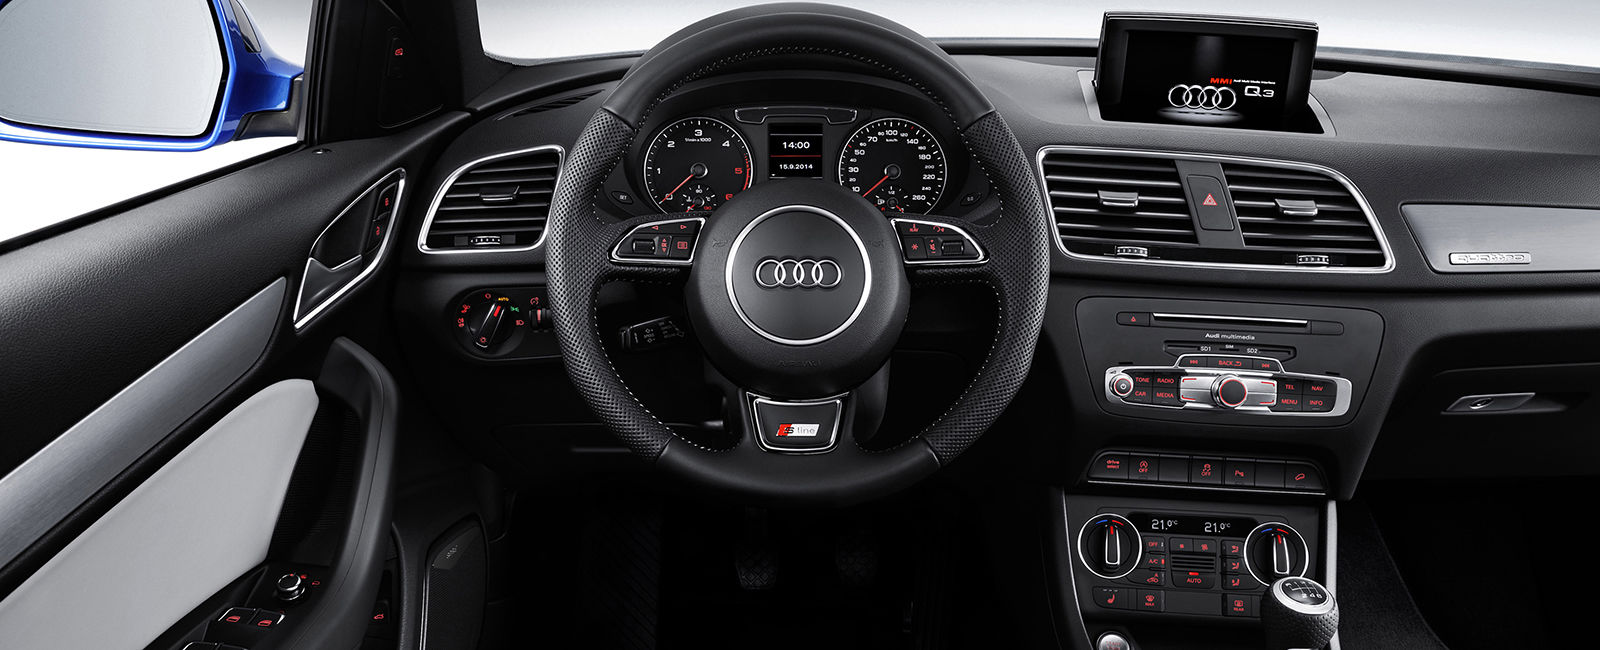 audi q3 sizes and dimensions guide carwow. Black Bedroom Furniture Sets. Home Design Ideas